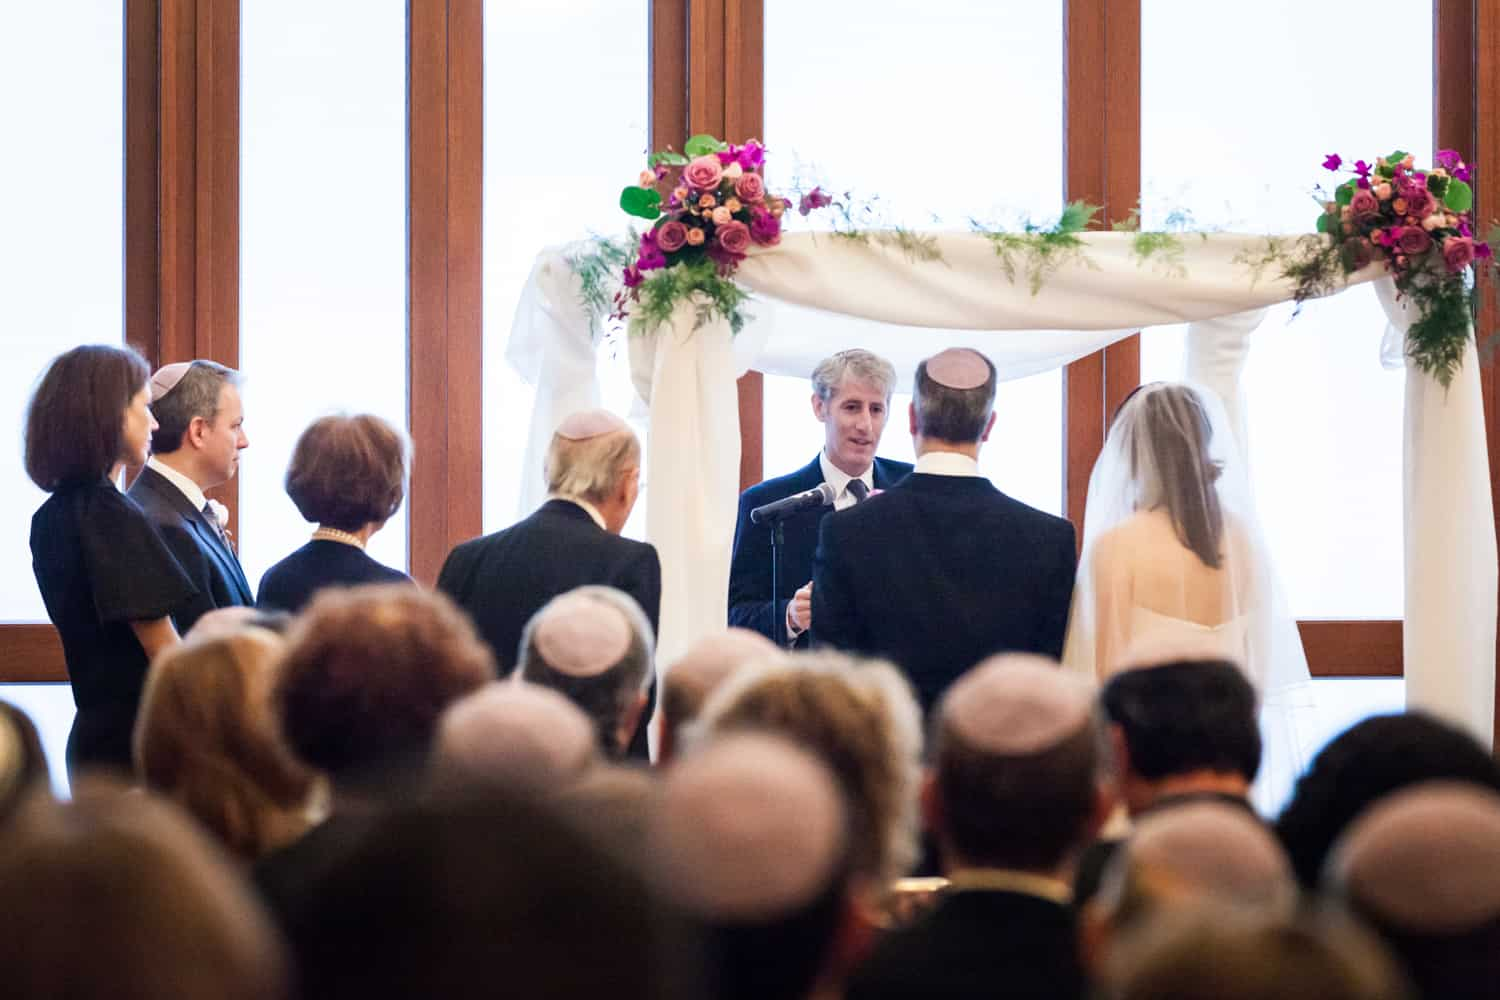 Bride and groom under chuppah during Harvard Club wedding ceremony